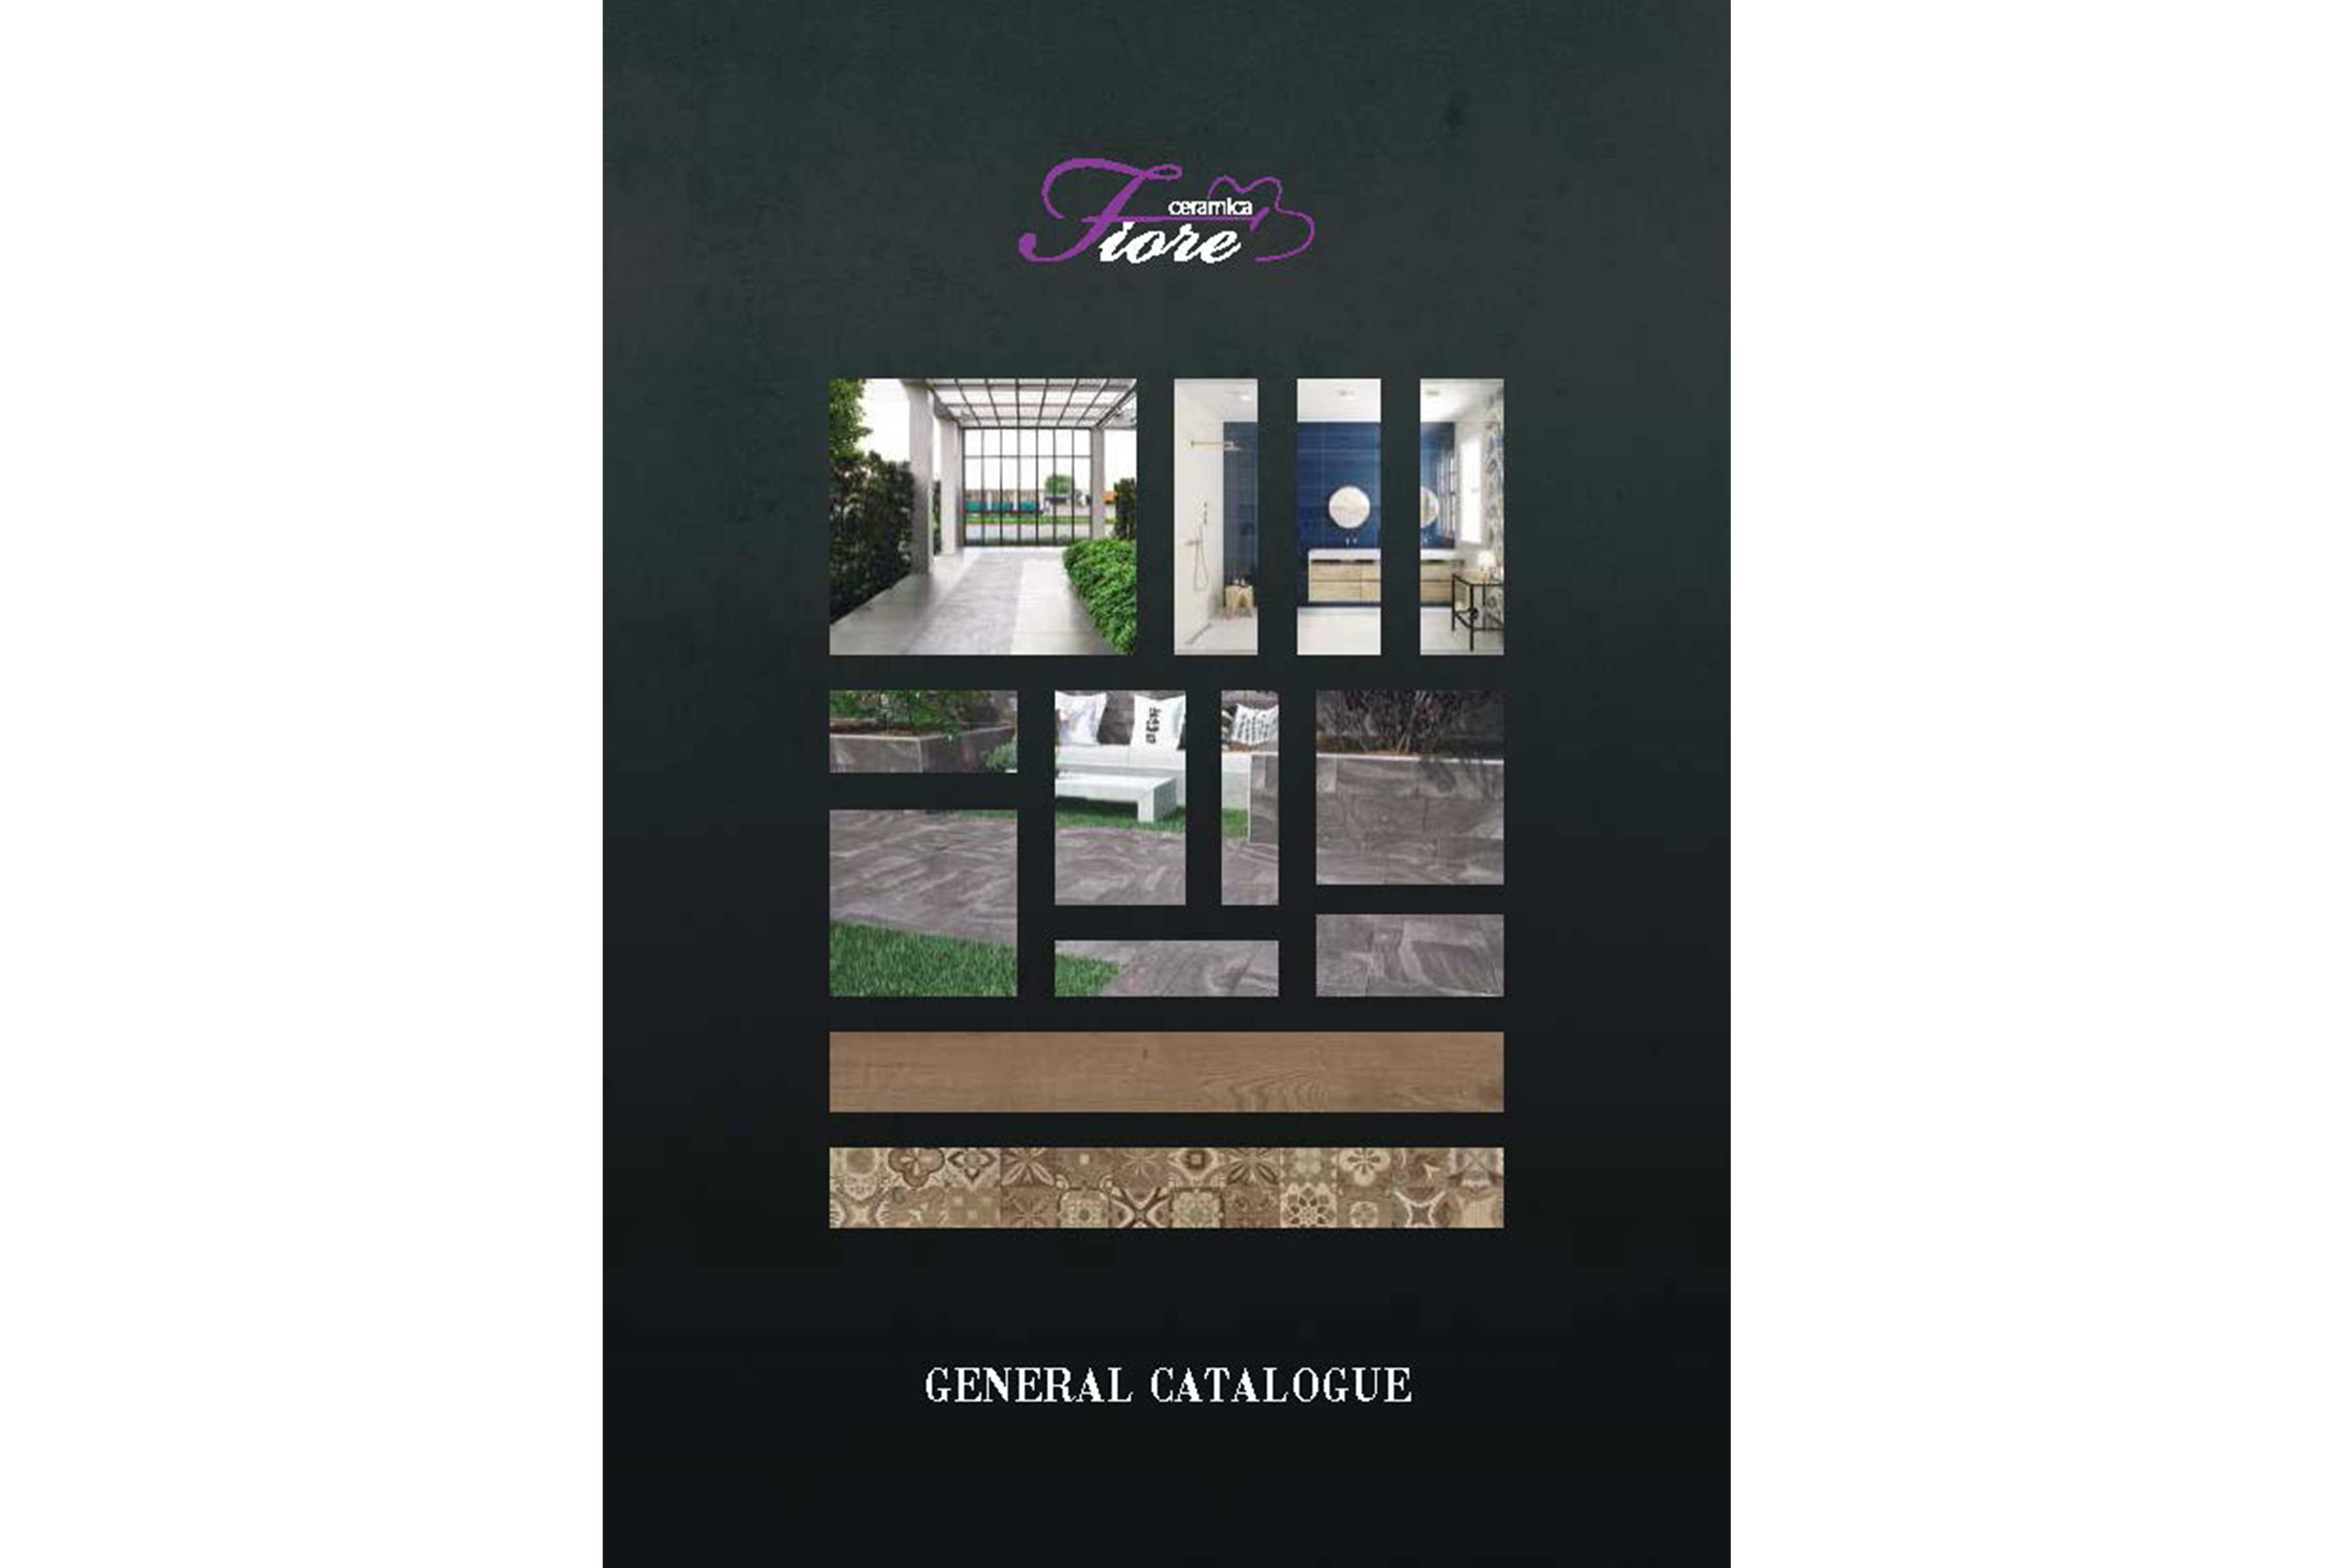 General catalogue Fiore 2020